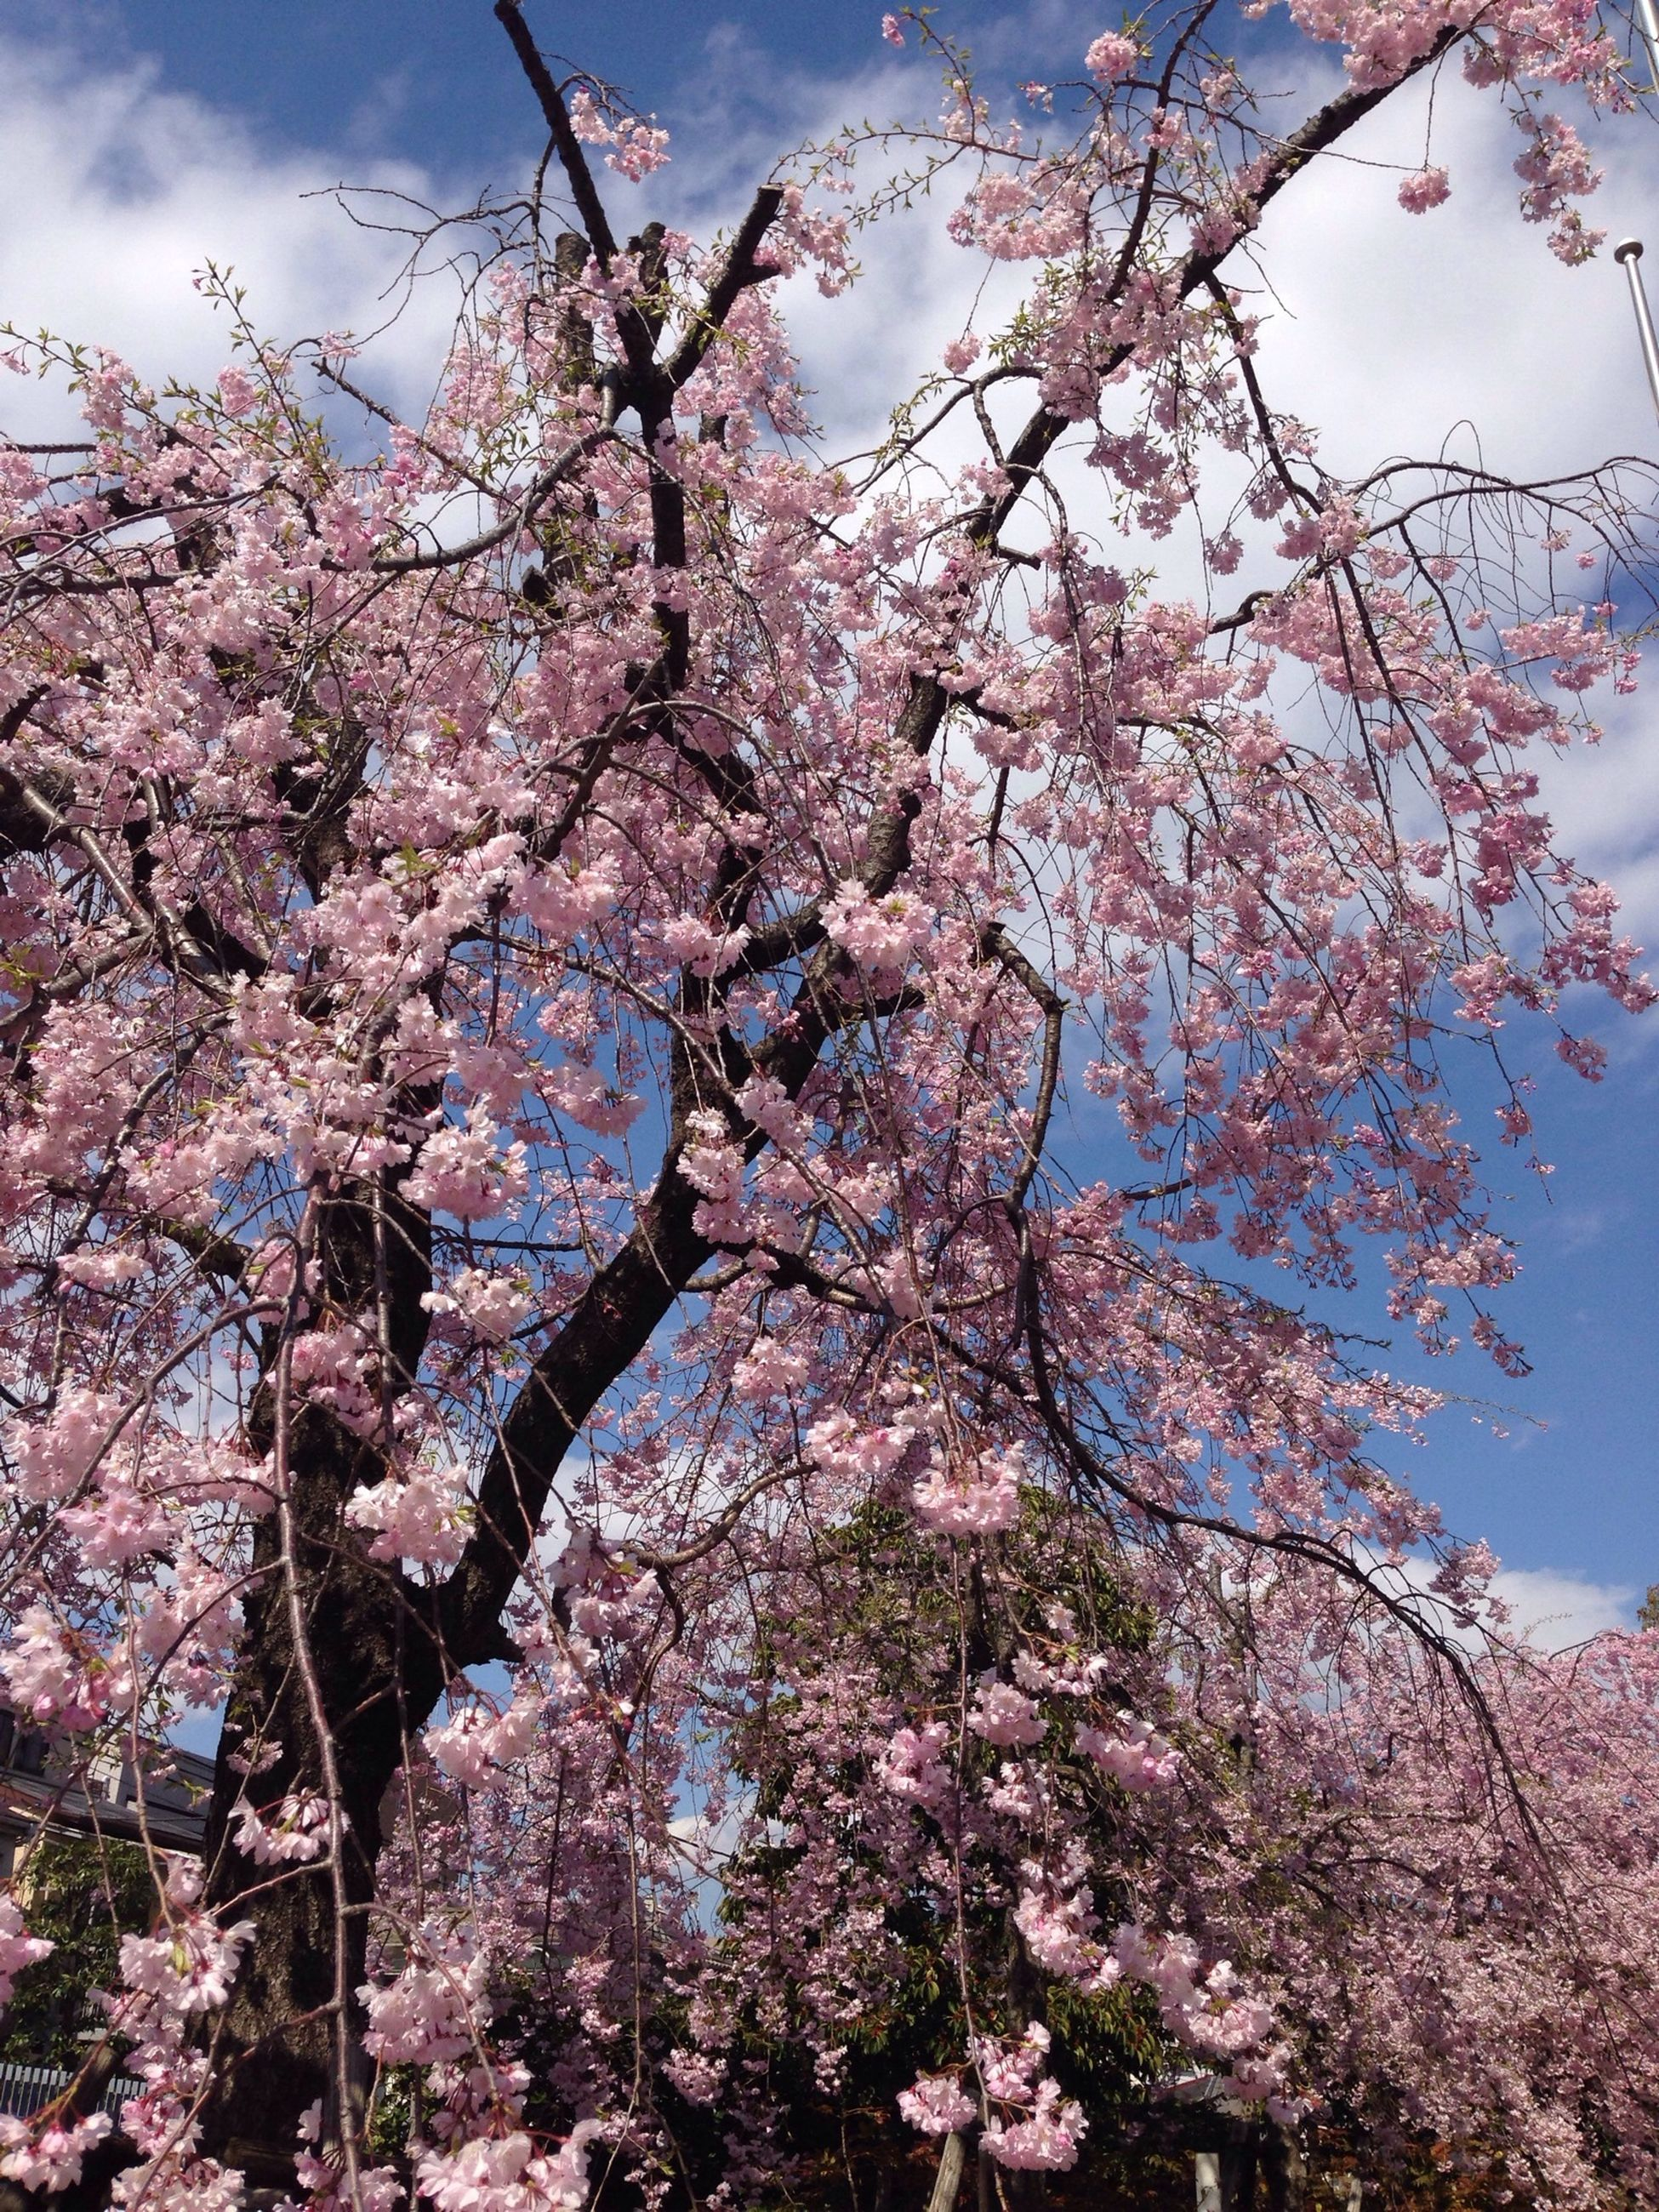 tree, branch, flower, low angle view, cherry blossom, growth, freshness, cherry tree, beauty in nature, blossom, sky, nature, fragility, springtime, fruit tree, in bloom, pink color, twig, day, blooming